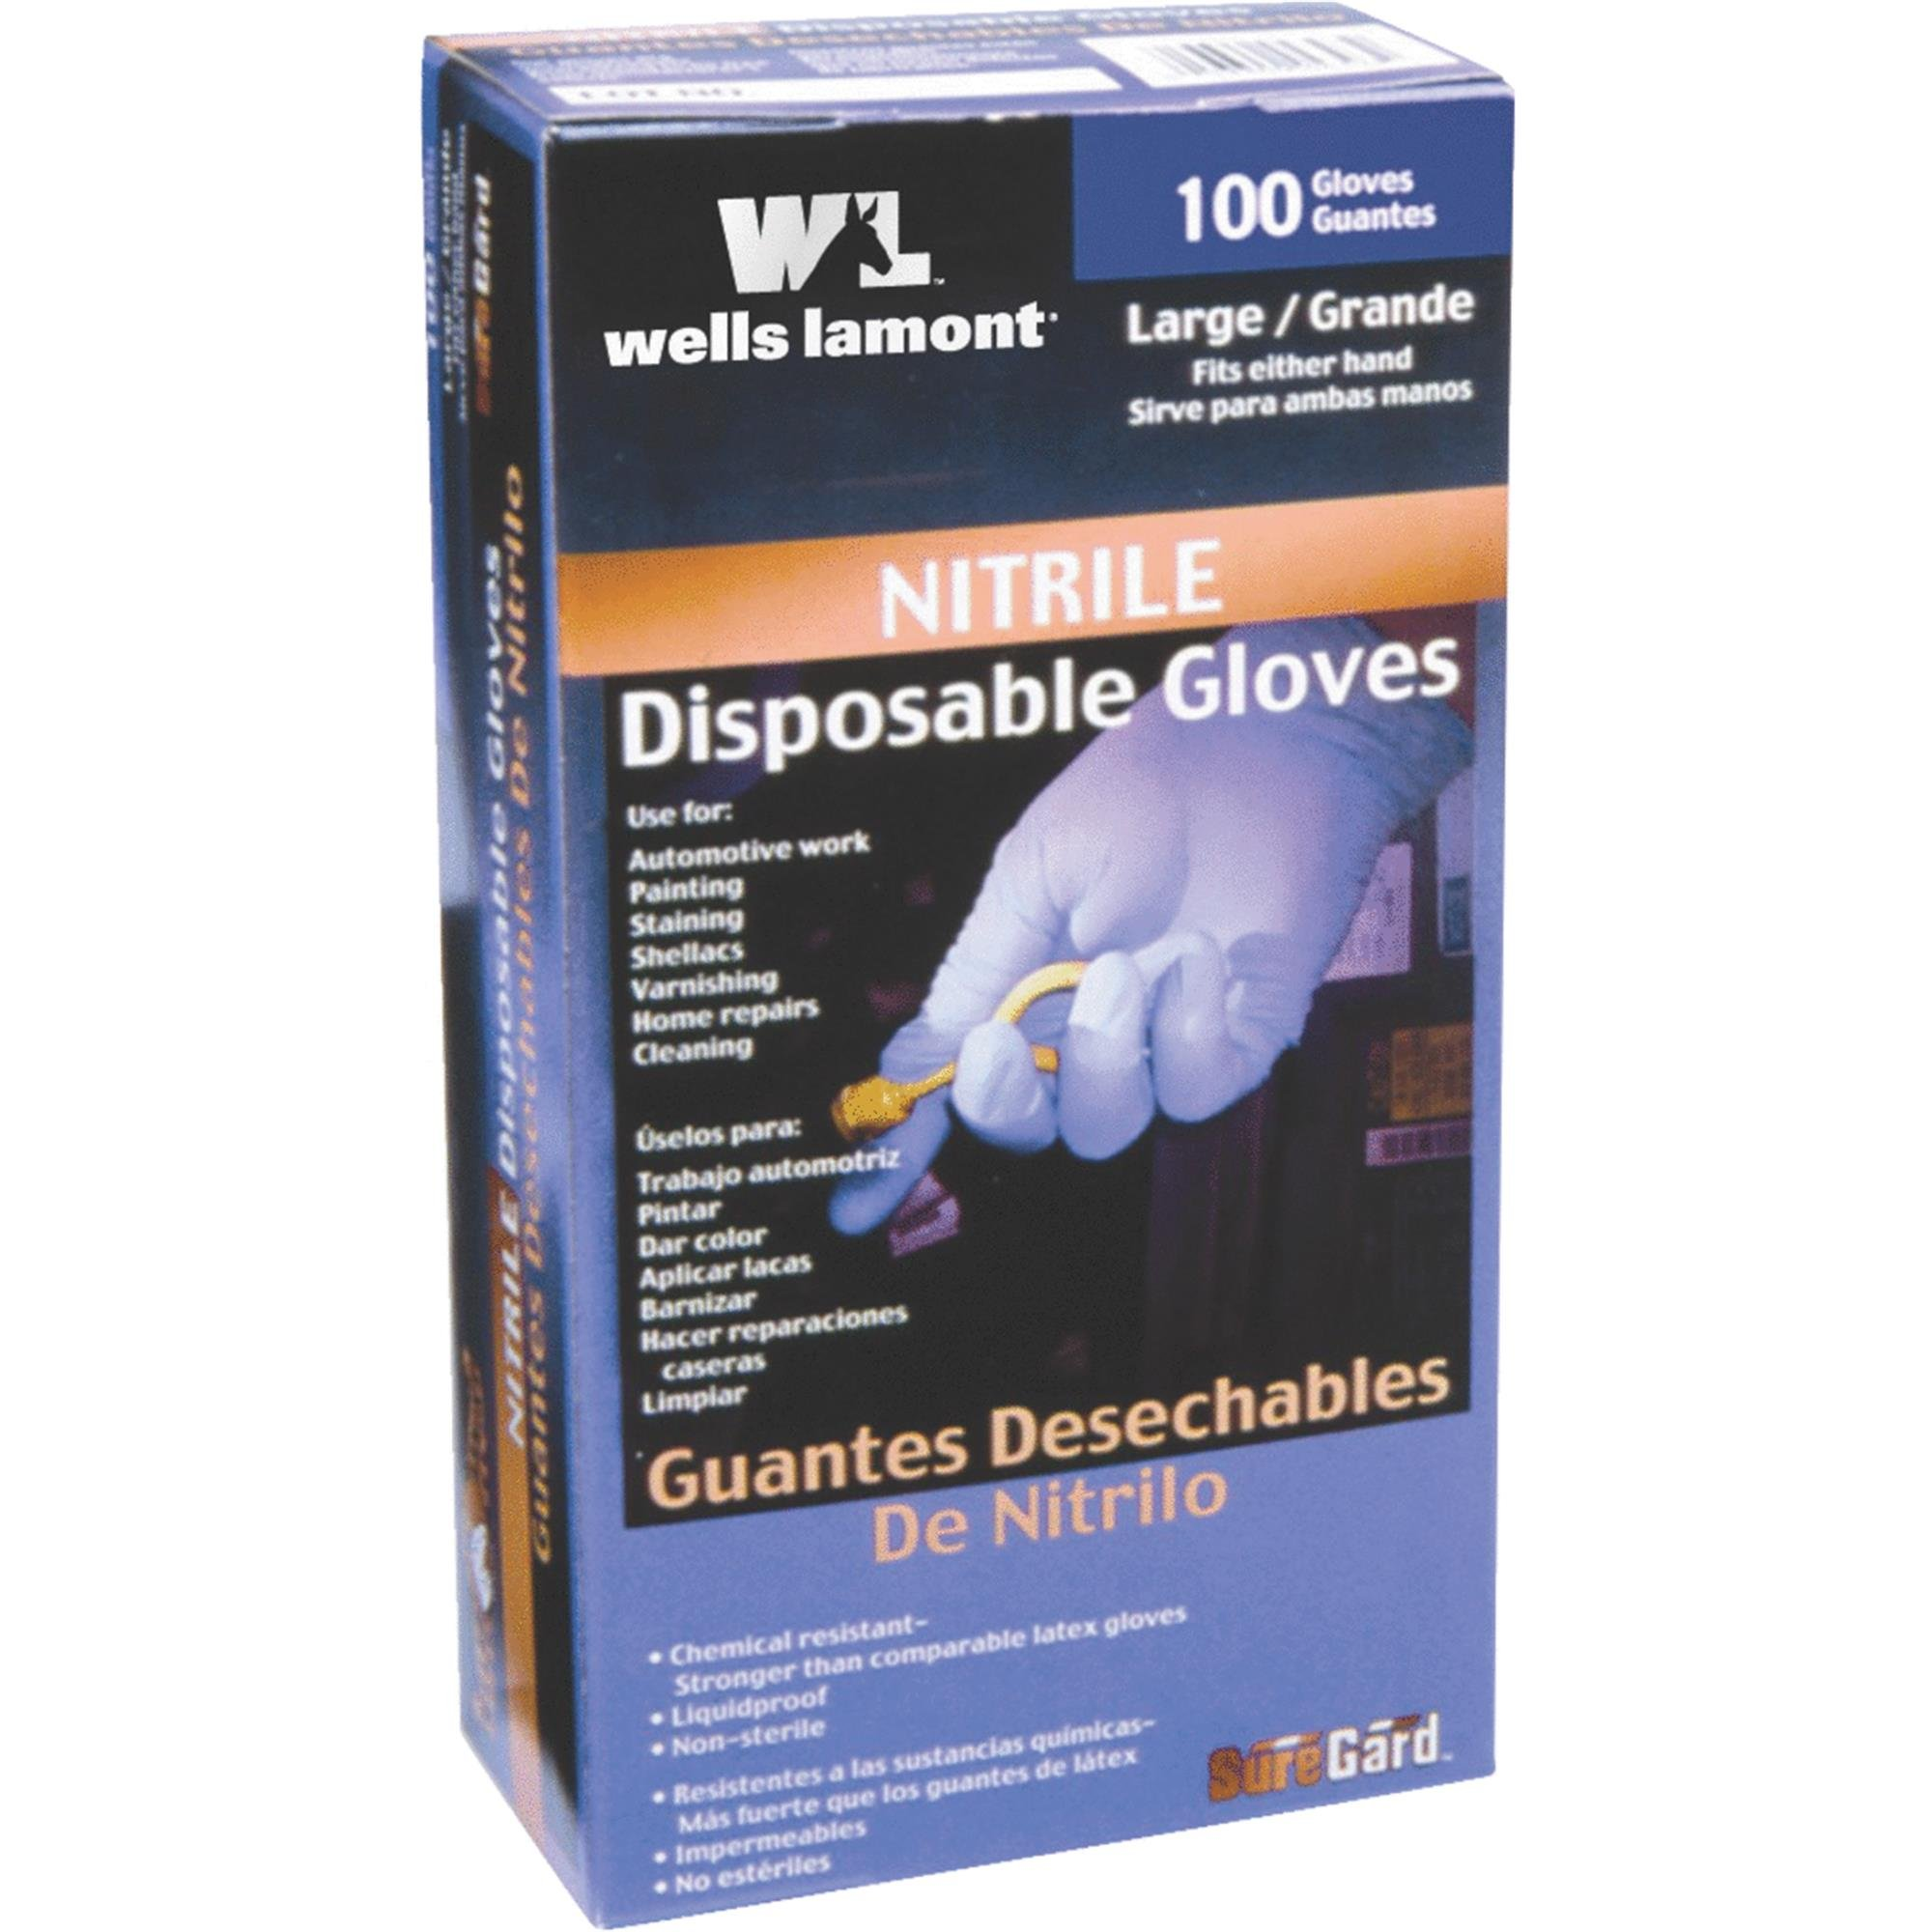 Wells Lamont 153 100-Count Disposable Nitrile Gloves Gloves, Household Rubber